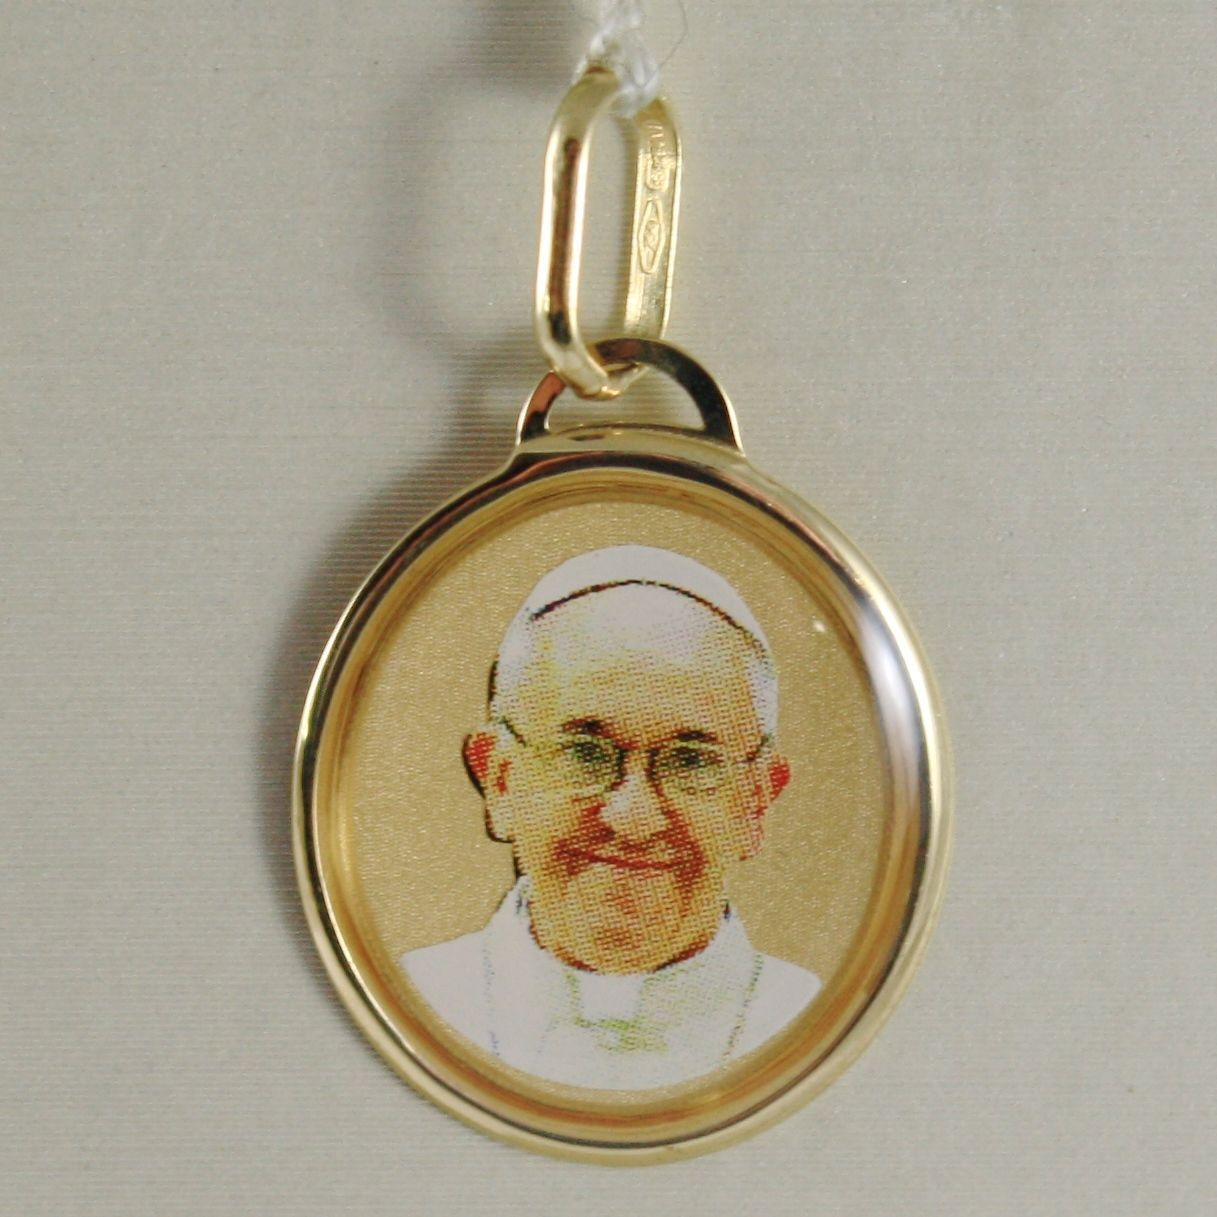 PENDANT MEDAL YELLOW GOLD 750 18K, POPE FRANCIS, ENAMELLED, MADE IN ITALY